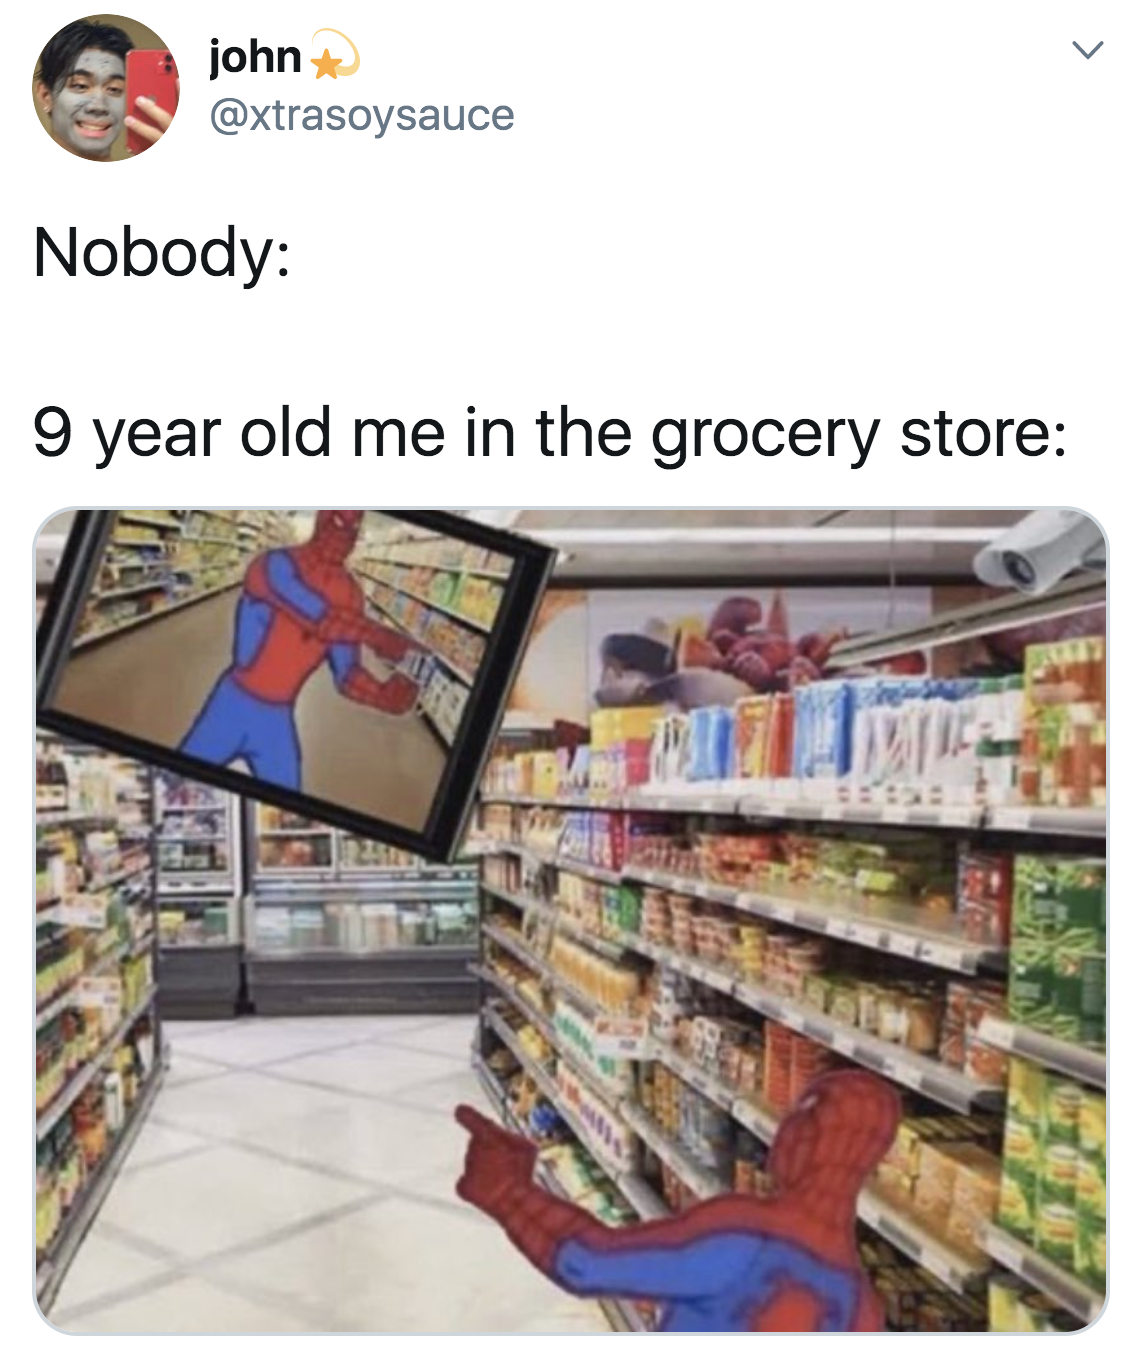 Picture of Spiderman pointing at himself on the CCTV at the grocery store